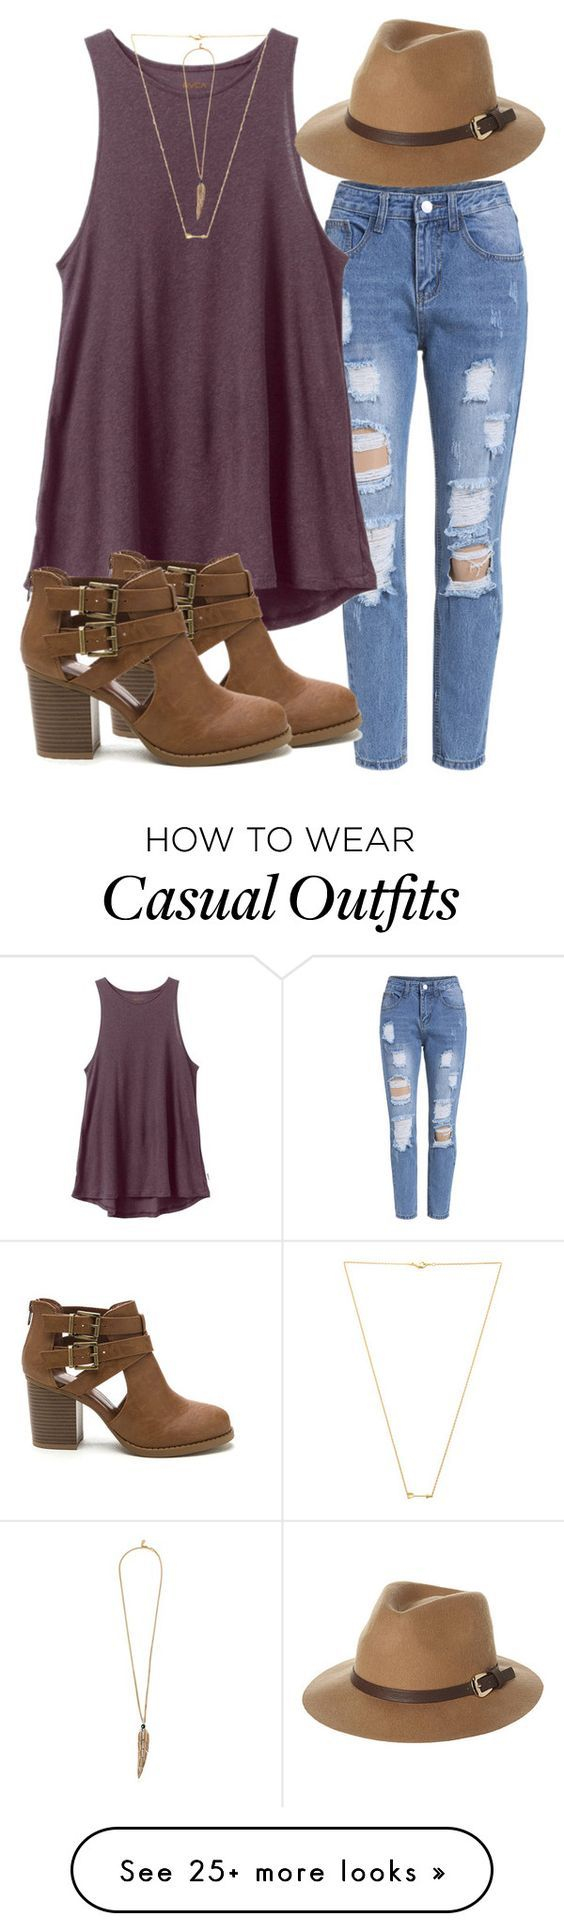 Casual on Polyvore featuring RVCA, Rusty, Wanderlust + Co, Roberto Cavalli, women's clothing, women, female, woman, misses and juniors